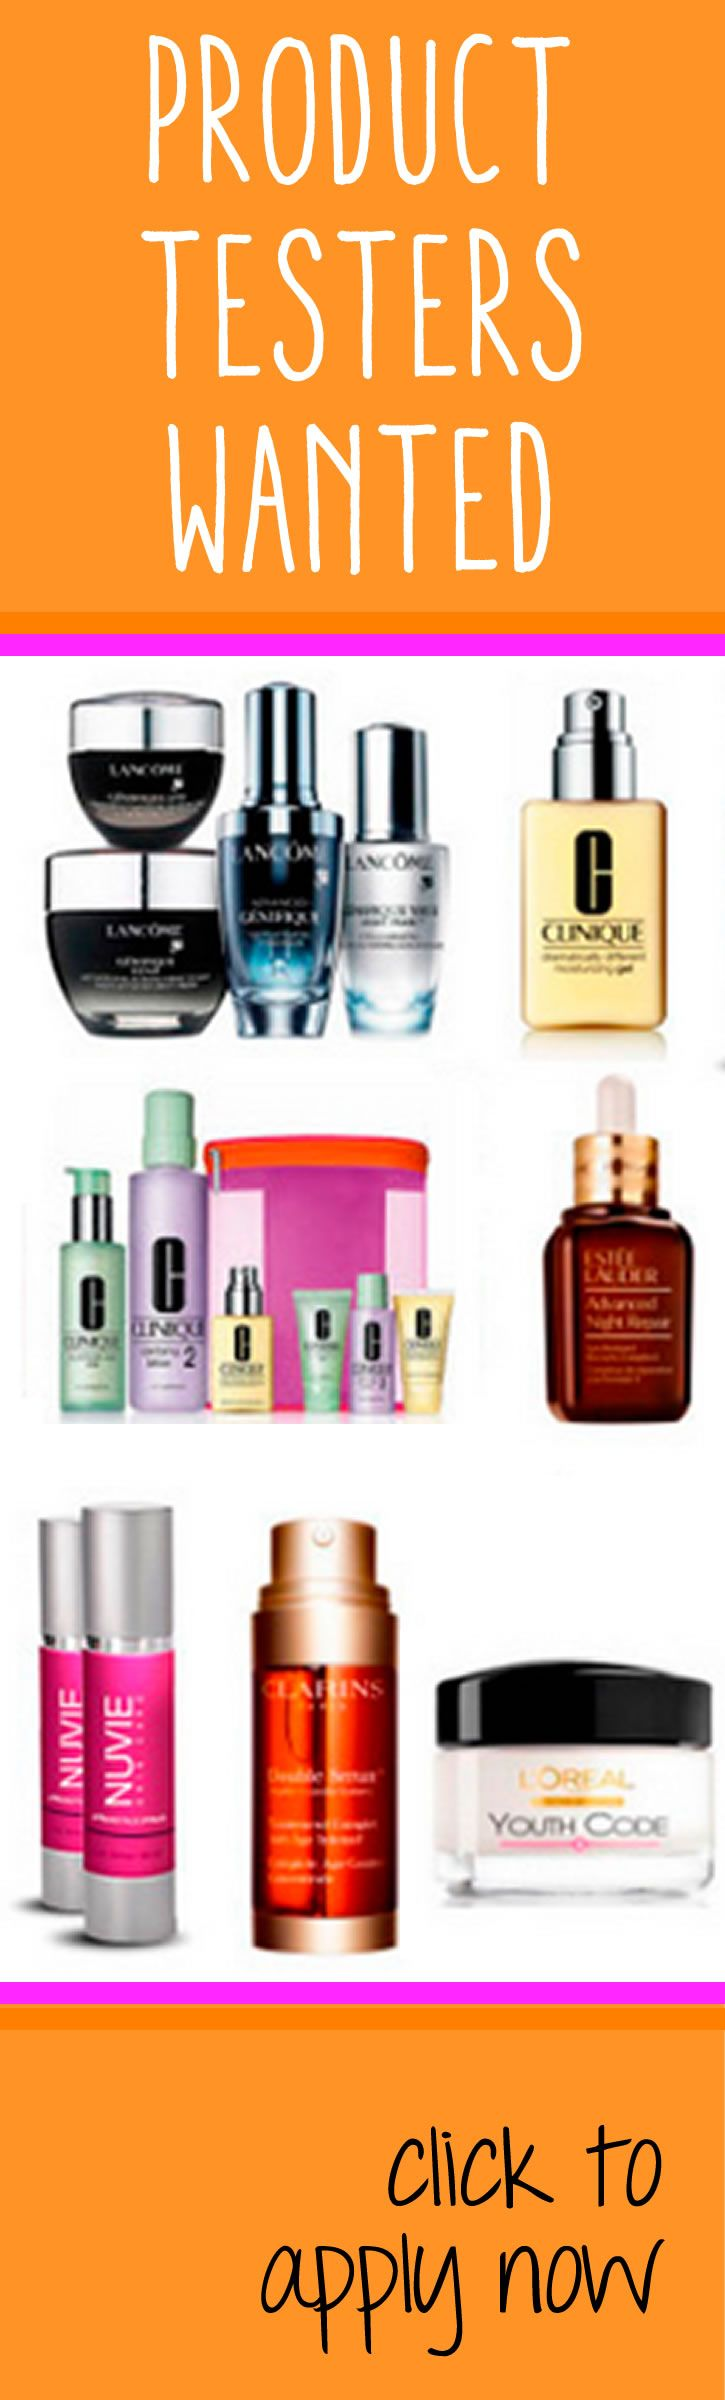 WOW! Free beauty products and samples for testers. Love it!